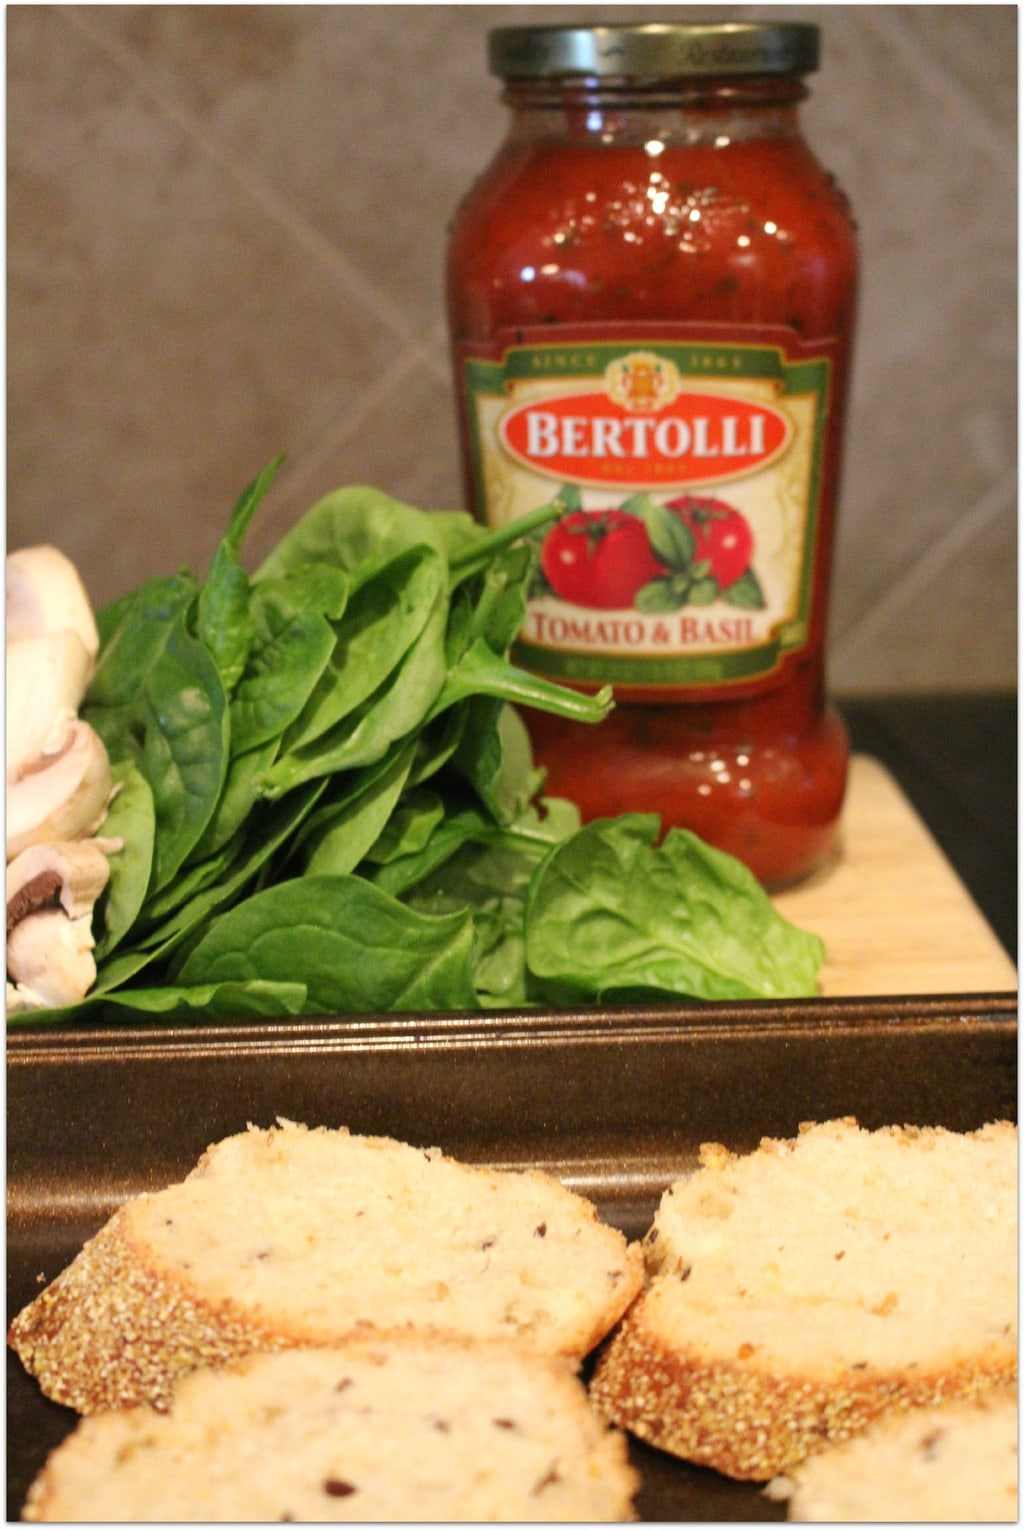 These Bruschetta Melts are bursting with flavor! Topped with tomato sauce, fresh spinach, mushrooms, and fresh mozzarella, this is the perfect appetizer to take when bringing food to a party. The recipe is simple and easy. We had it for dinner with a salad. It's one of my favorite recipes!